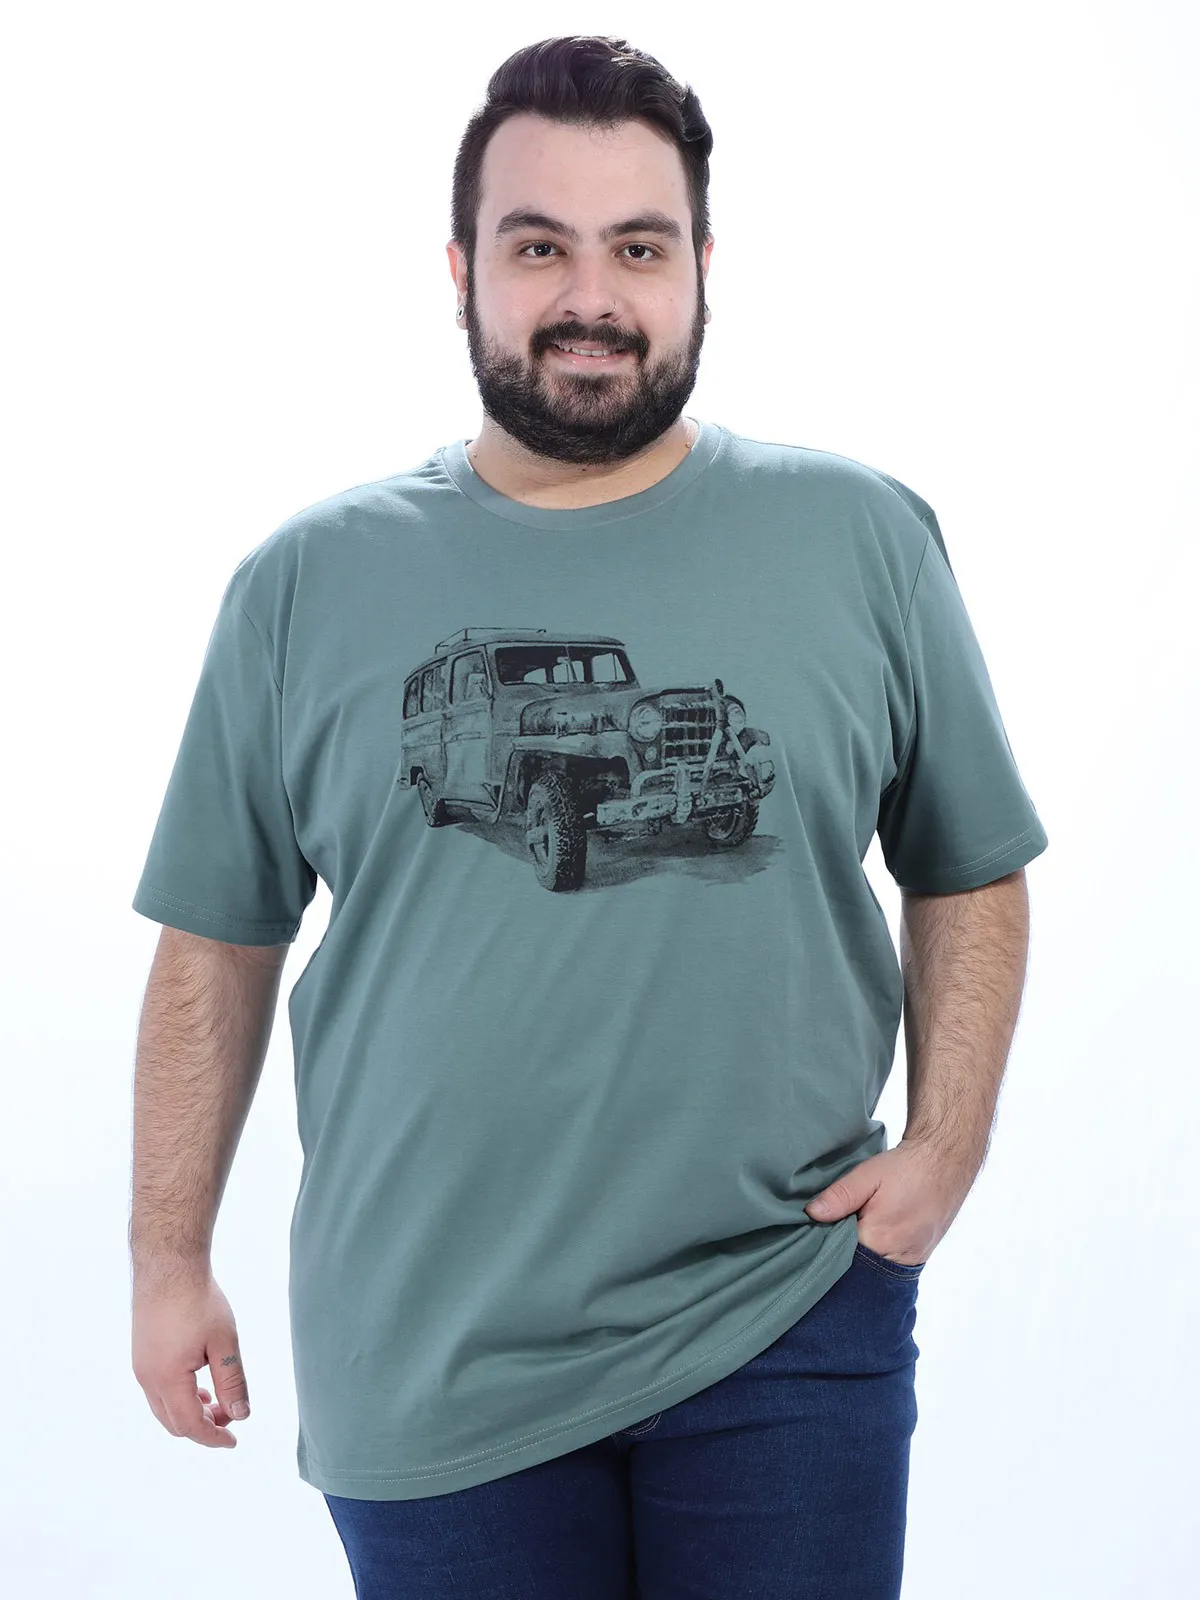 Camiseta Plus Size Masculino Manga Curta Estampa Jeep Concreto